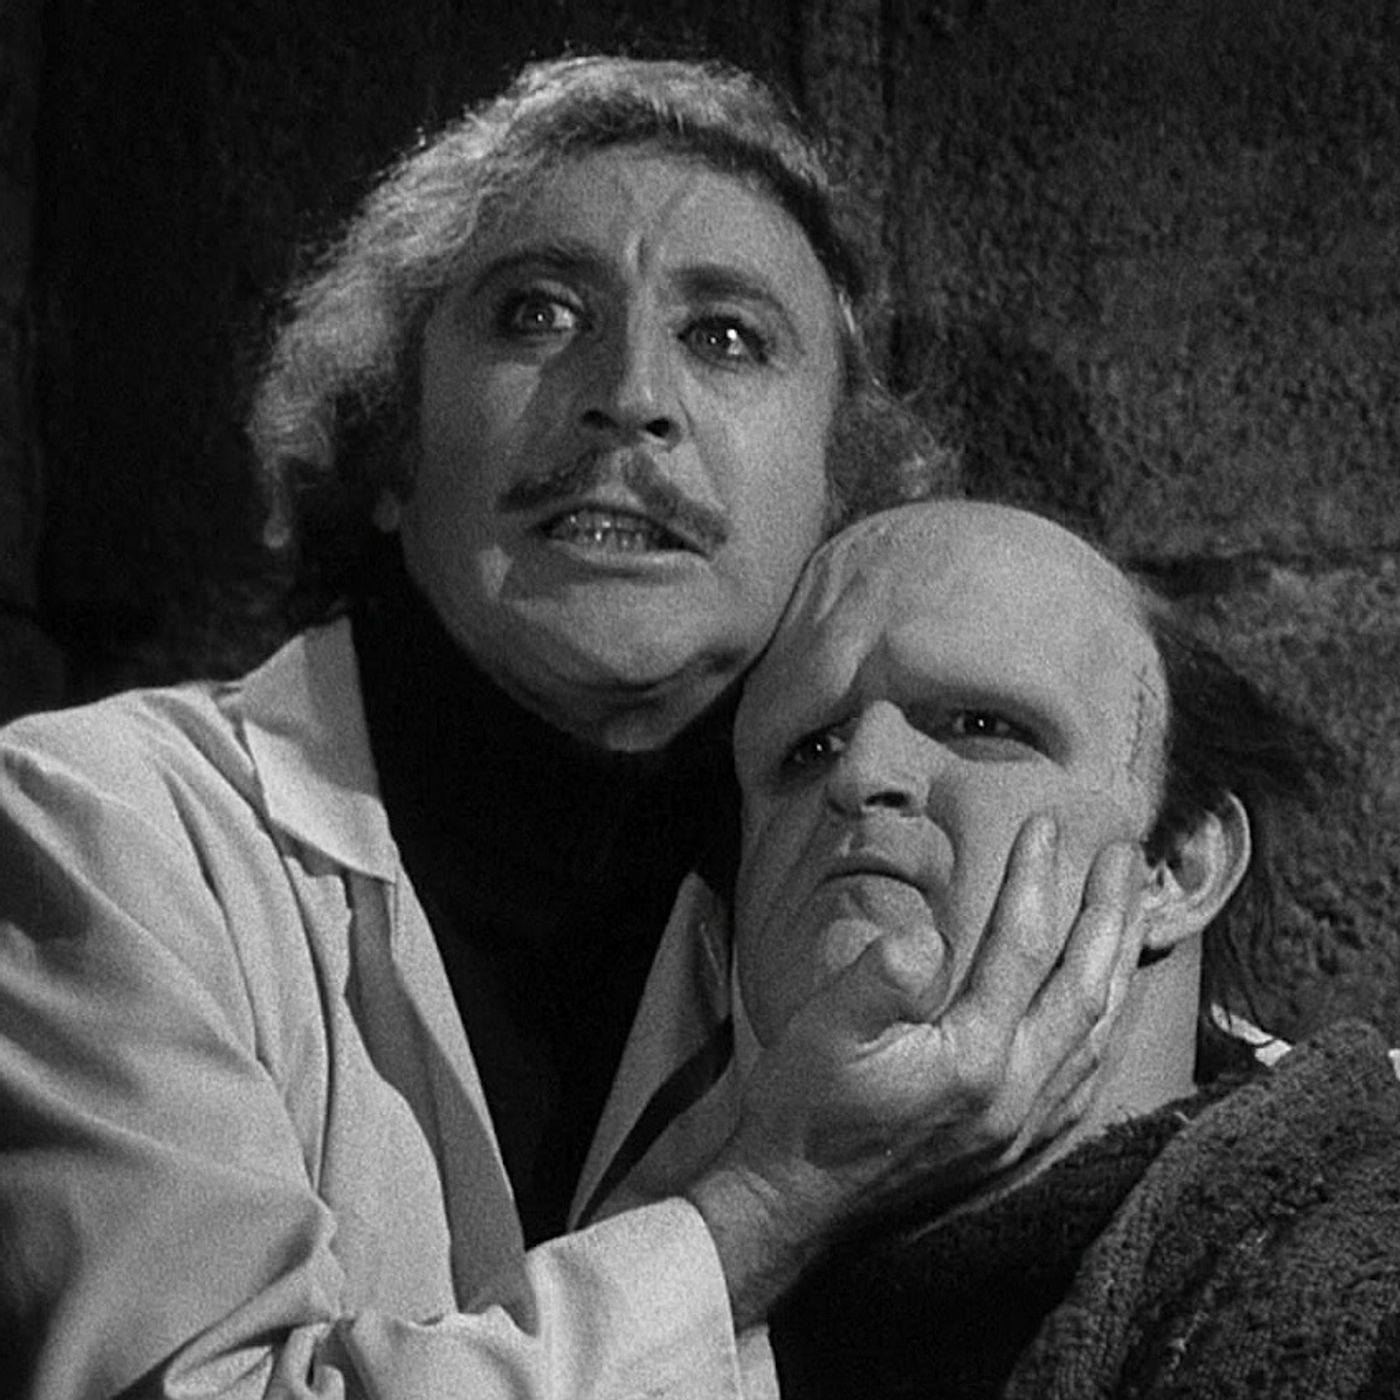 House of Brooks - 43 - Young Frankenstein